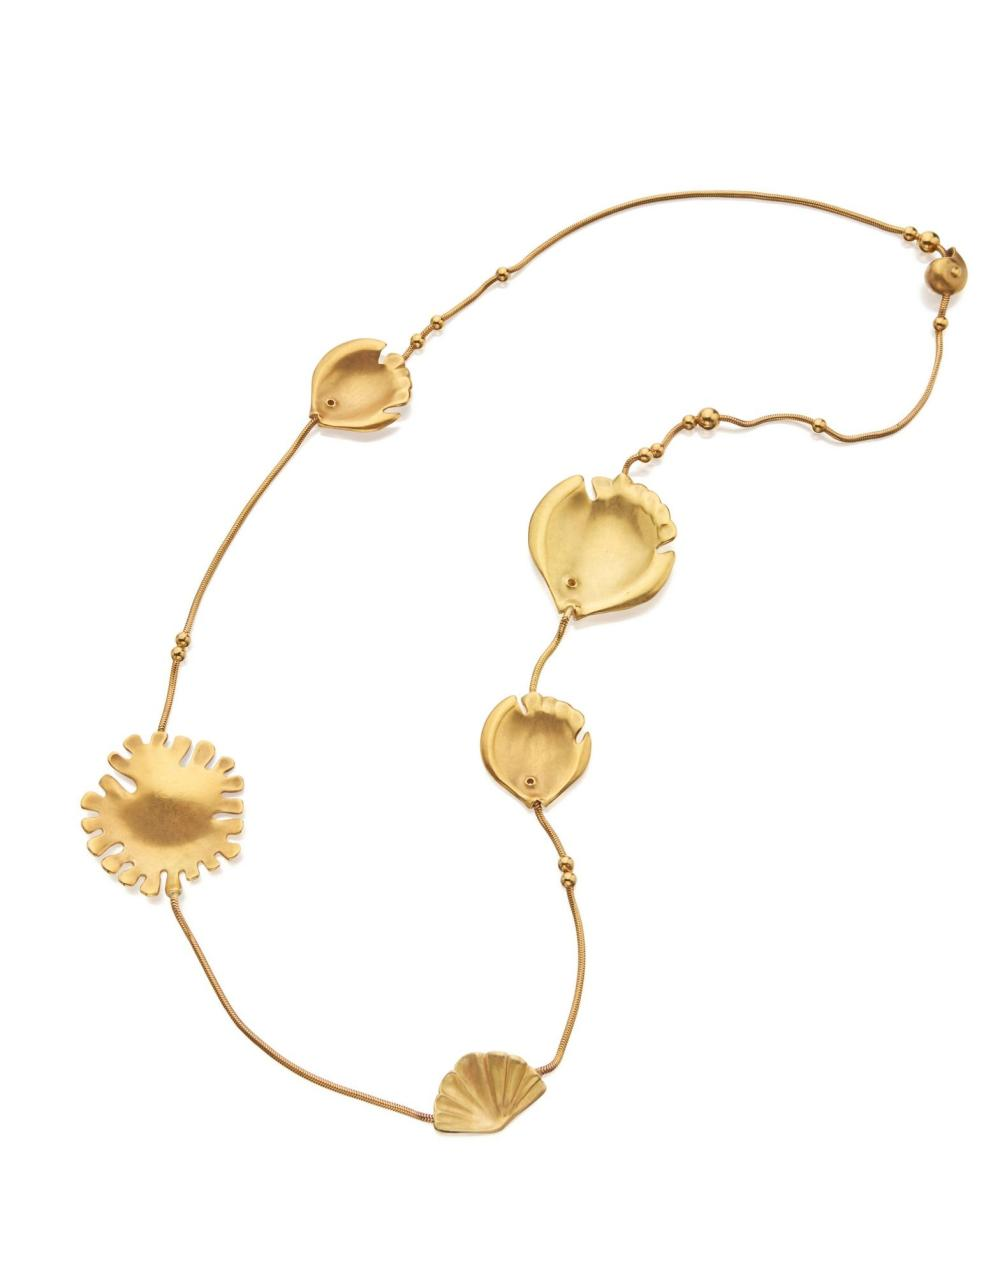 GOLD NECKLACE, ANGELA CUMMINGS FOR TIFFANY & CO.